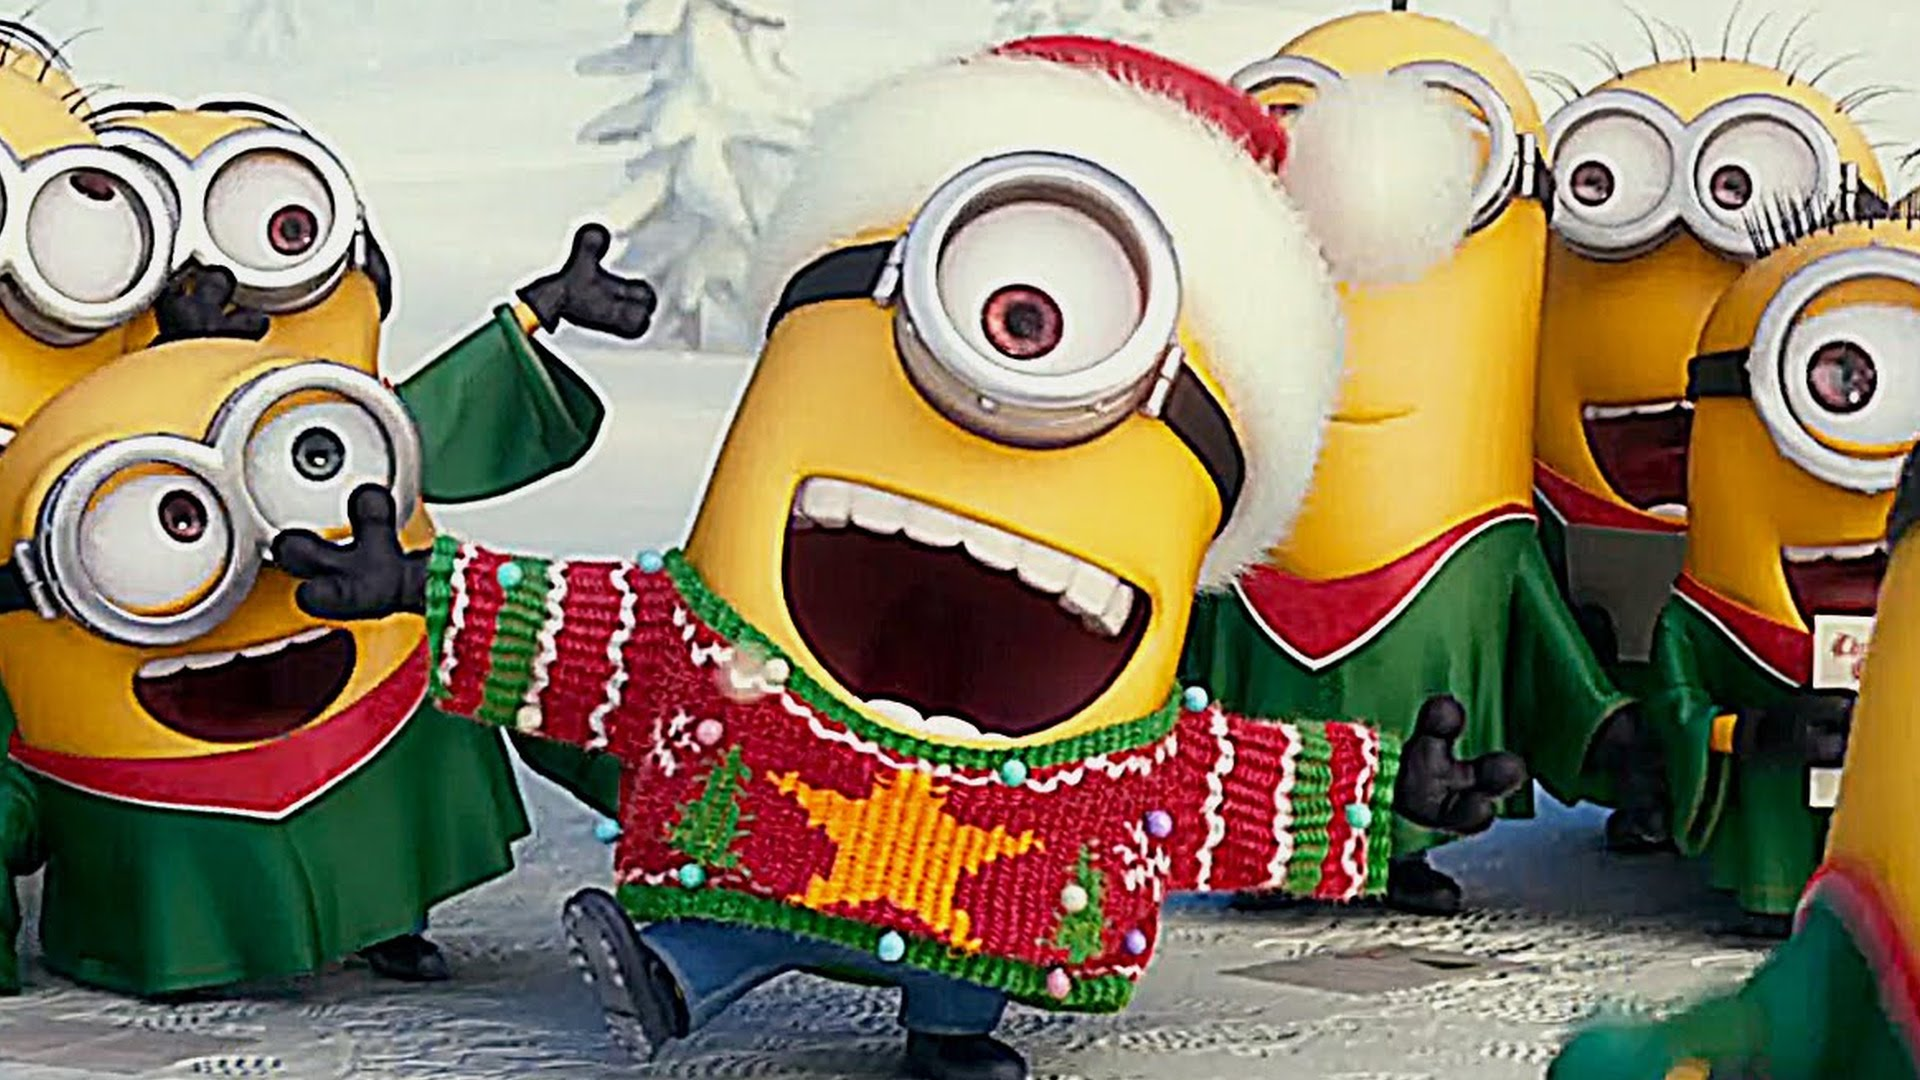 """At the end of the day …. """"Minions For Christmas""""!! 